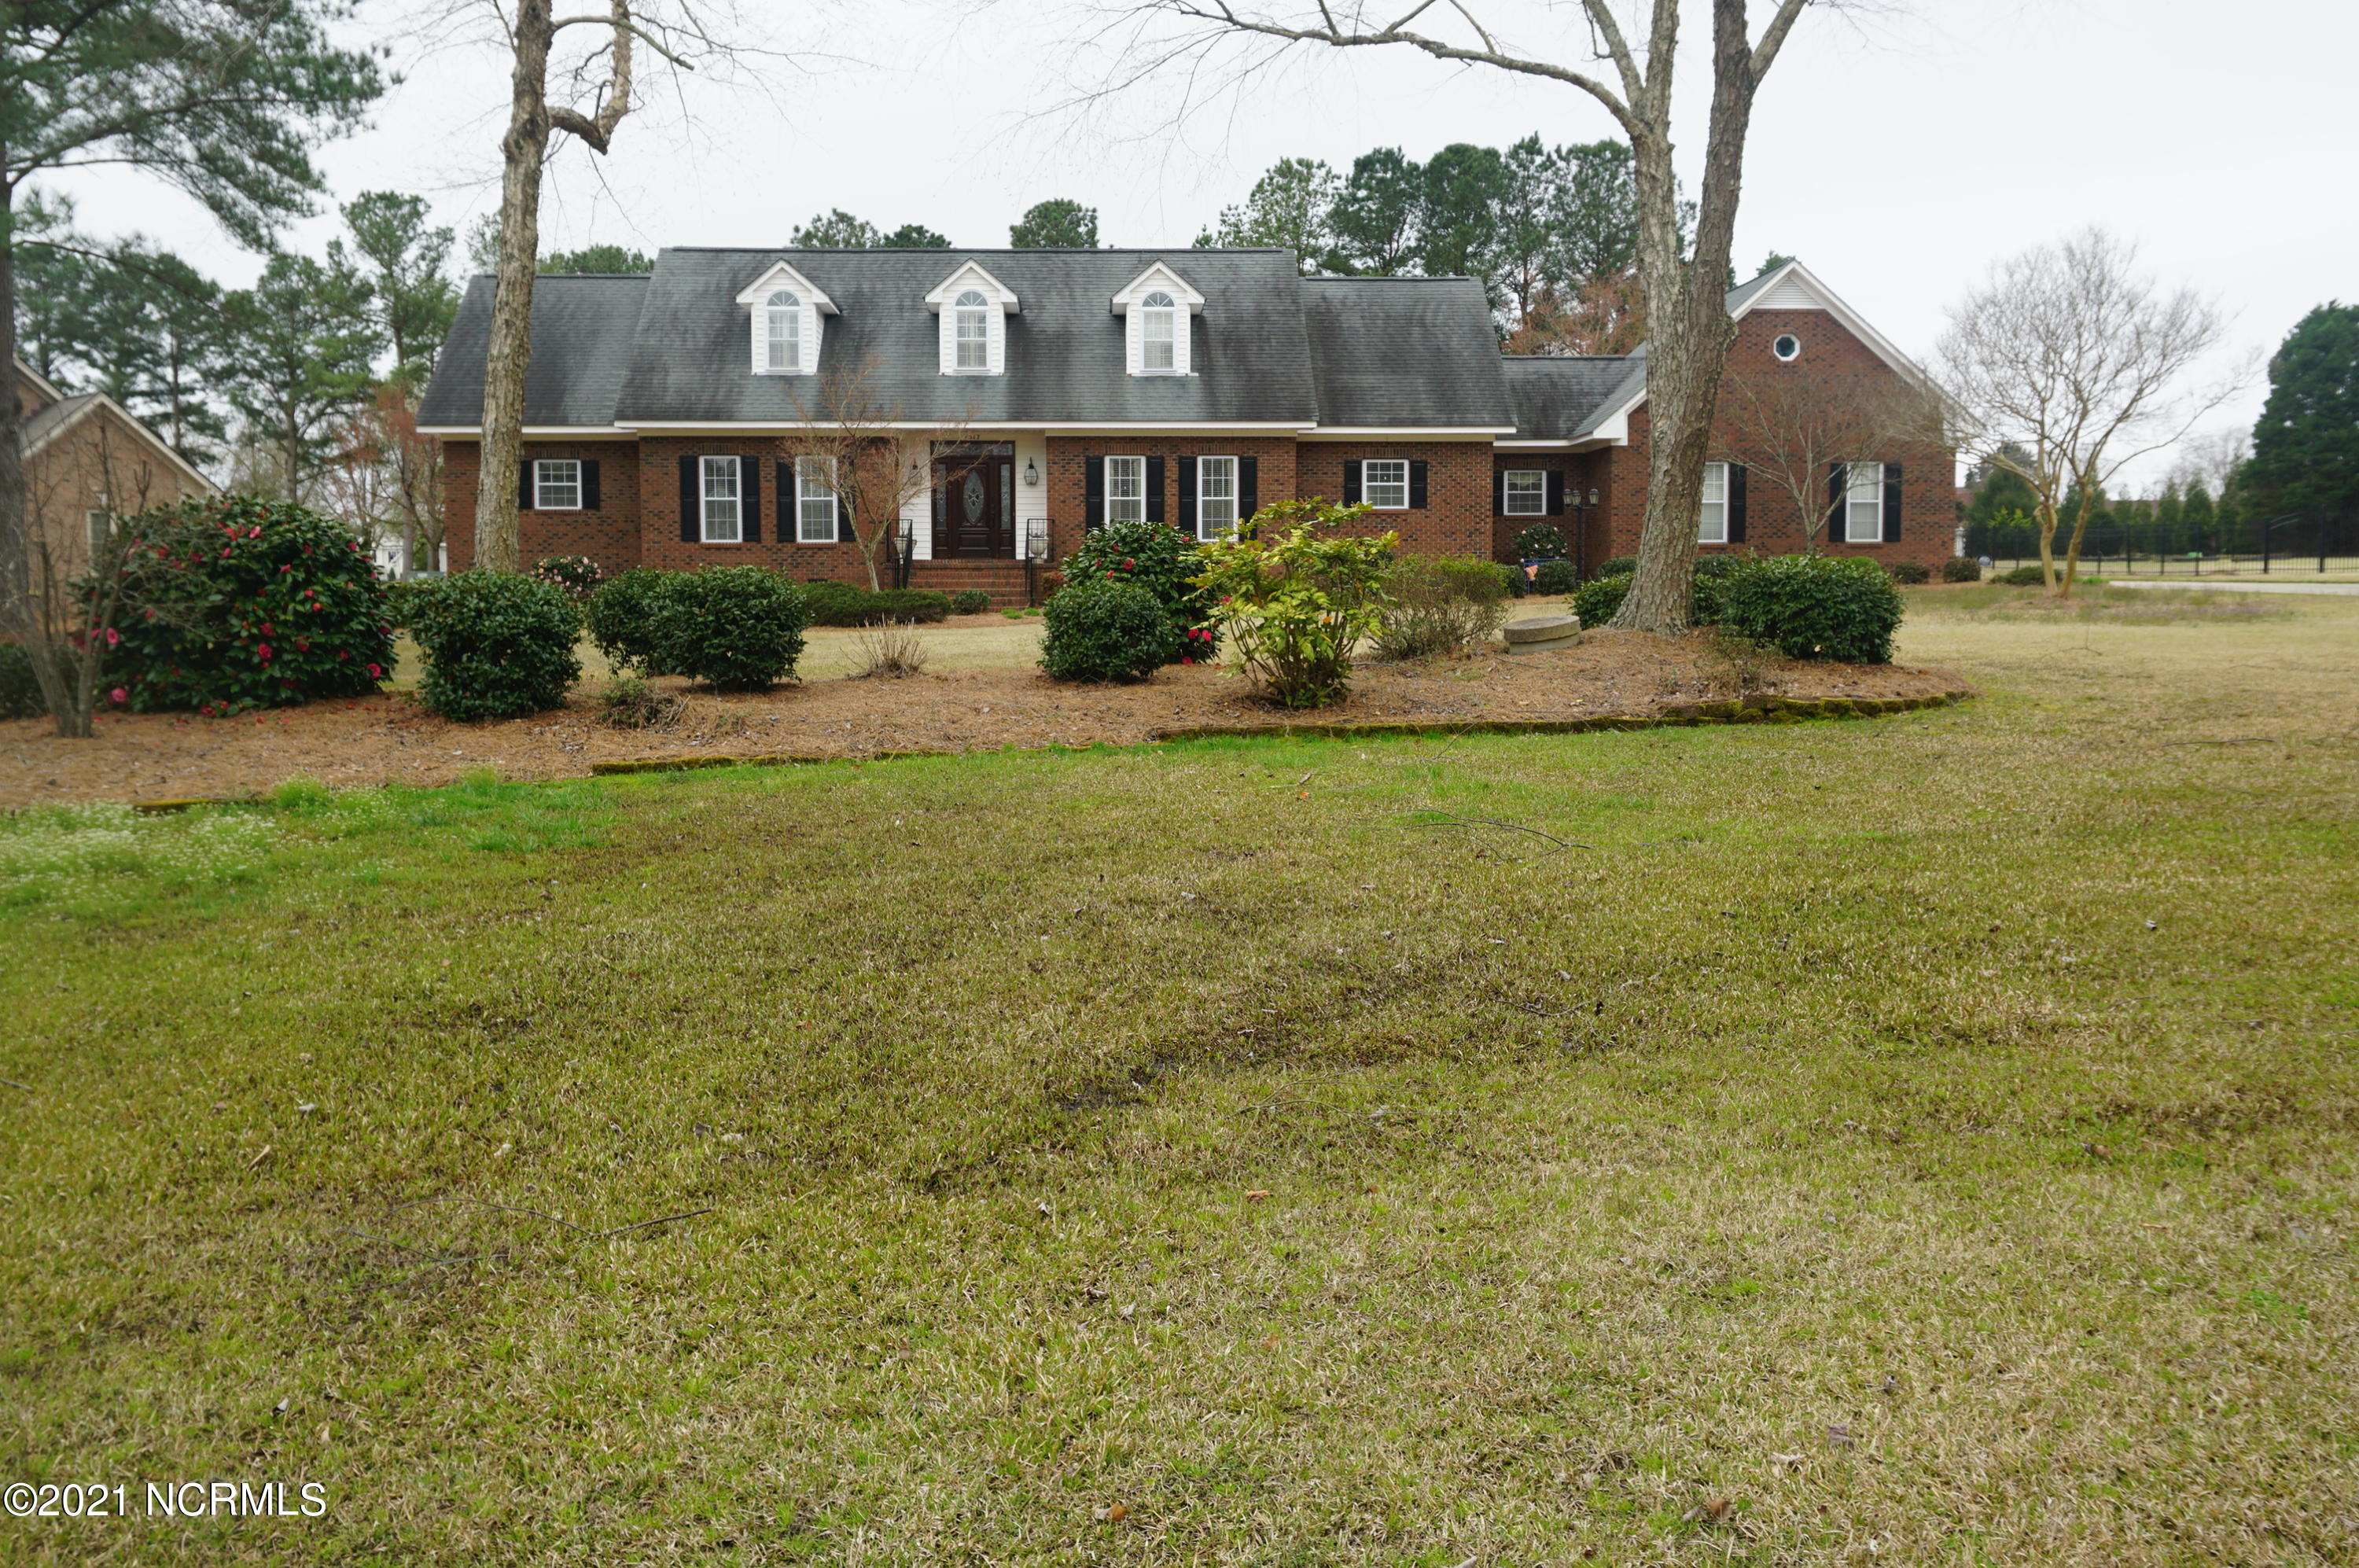 4517 Riverbirch Road, Wilson, North Carolina 27896, 3 Bedrooms Bedrooms, 8 Rooms Rooms,4 BathroomsBathrooms,Single family residence,For sale,Riverbirch,100262752